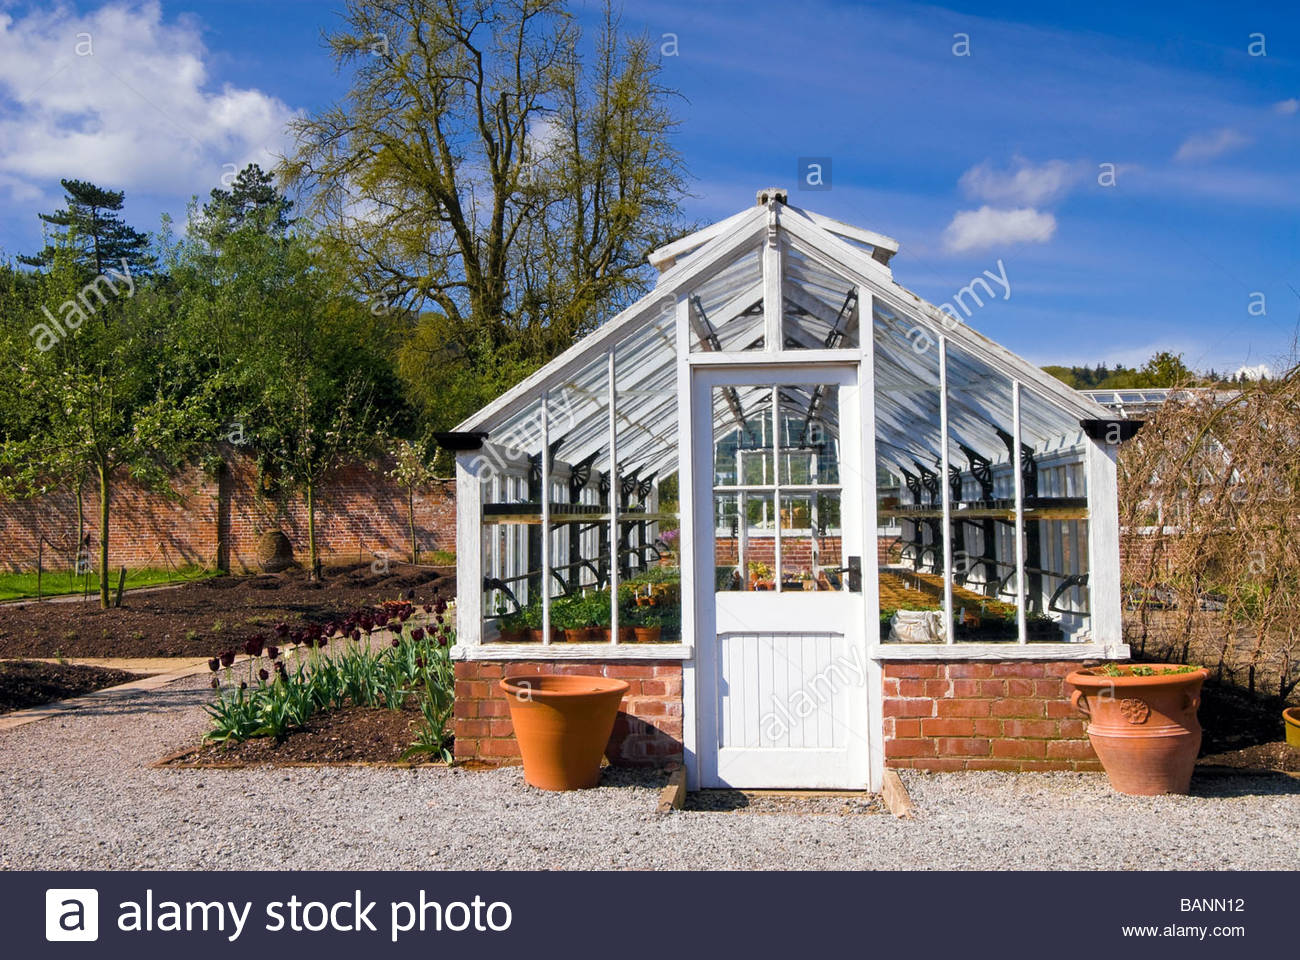 Wooden greenhouse in a walled garden, UK. Traditional green house viewed from the end with a door. - Stock Image